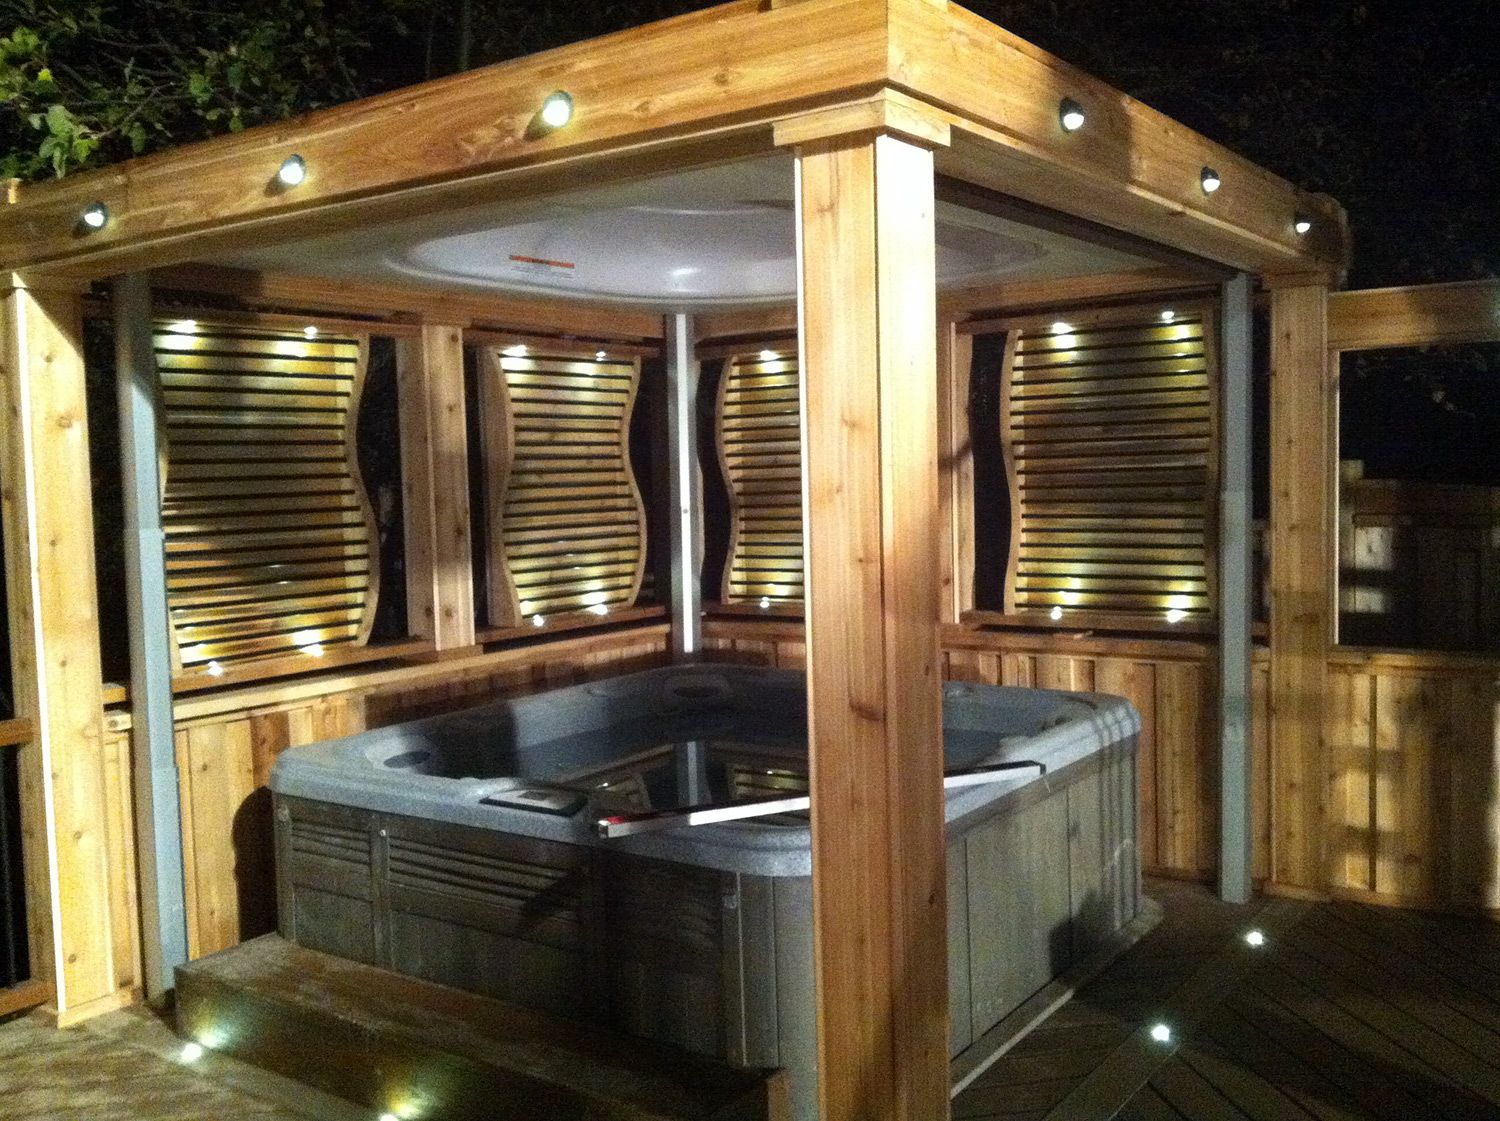 Enclosed Hot Tub Area Complete With Lighting Privacy Screens And Curtains The Roof Is Also A Retractable Cover Hot Tub Patio Hot Tub Gazebo Hot Tub Outdoor